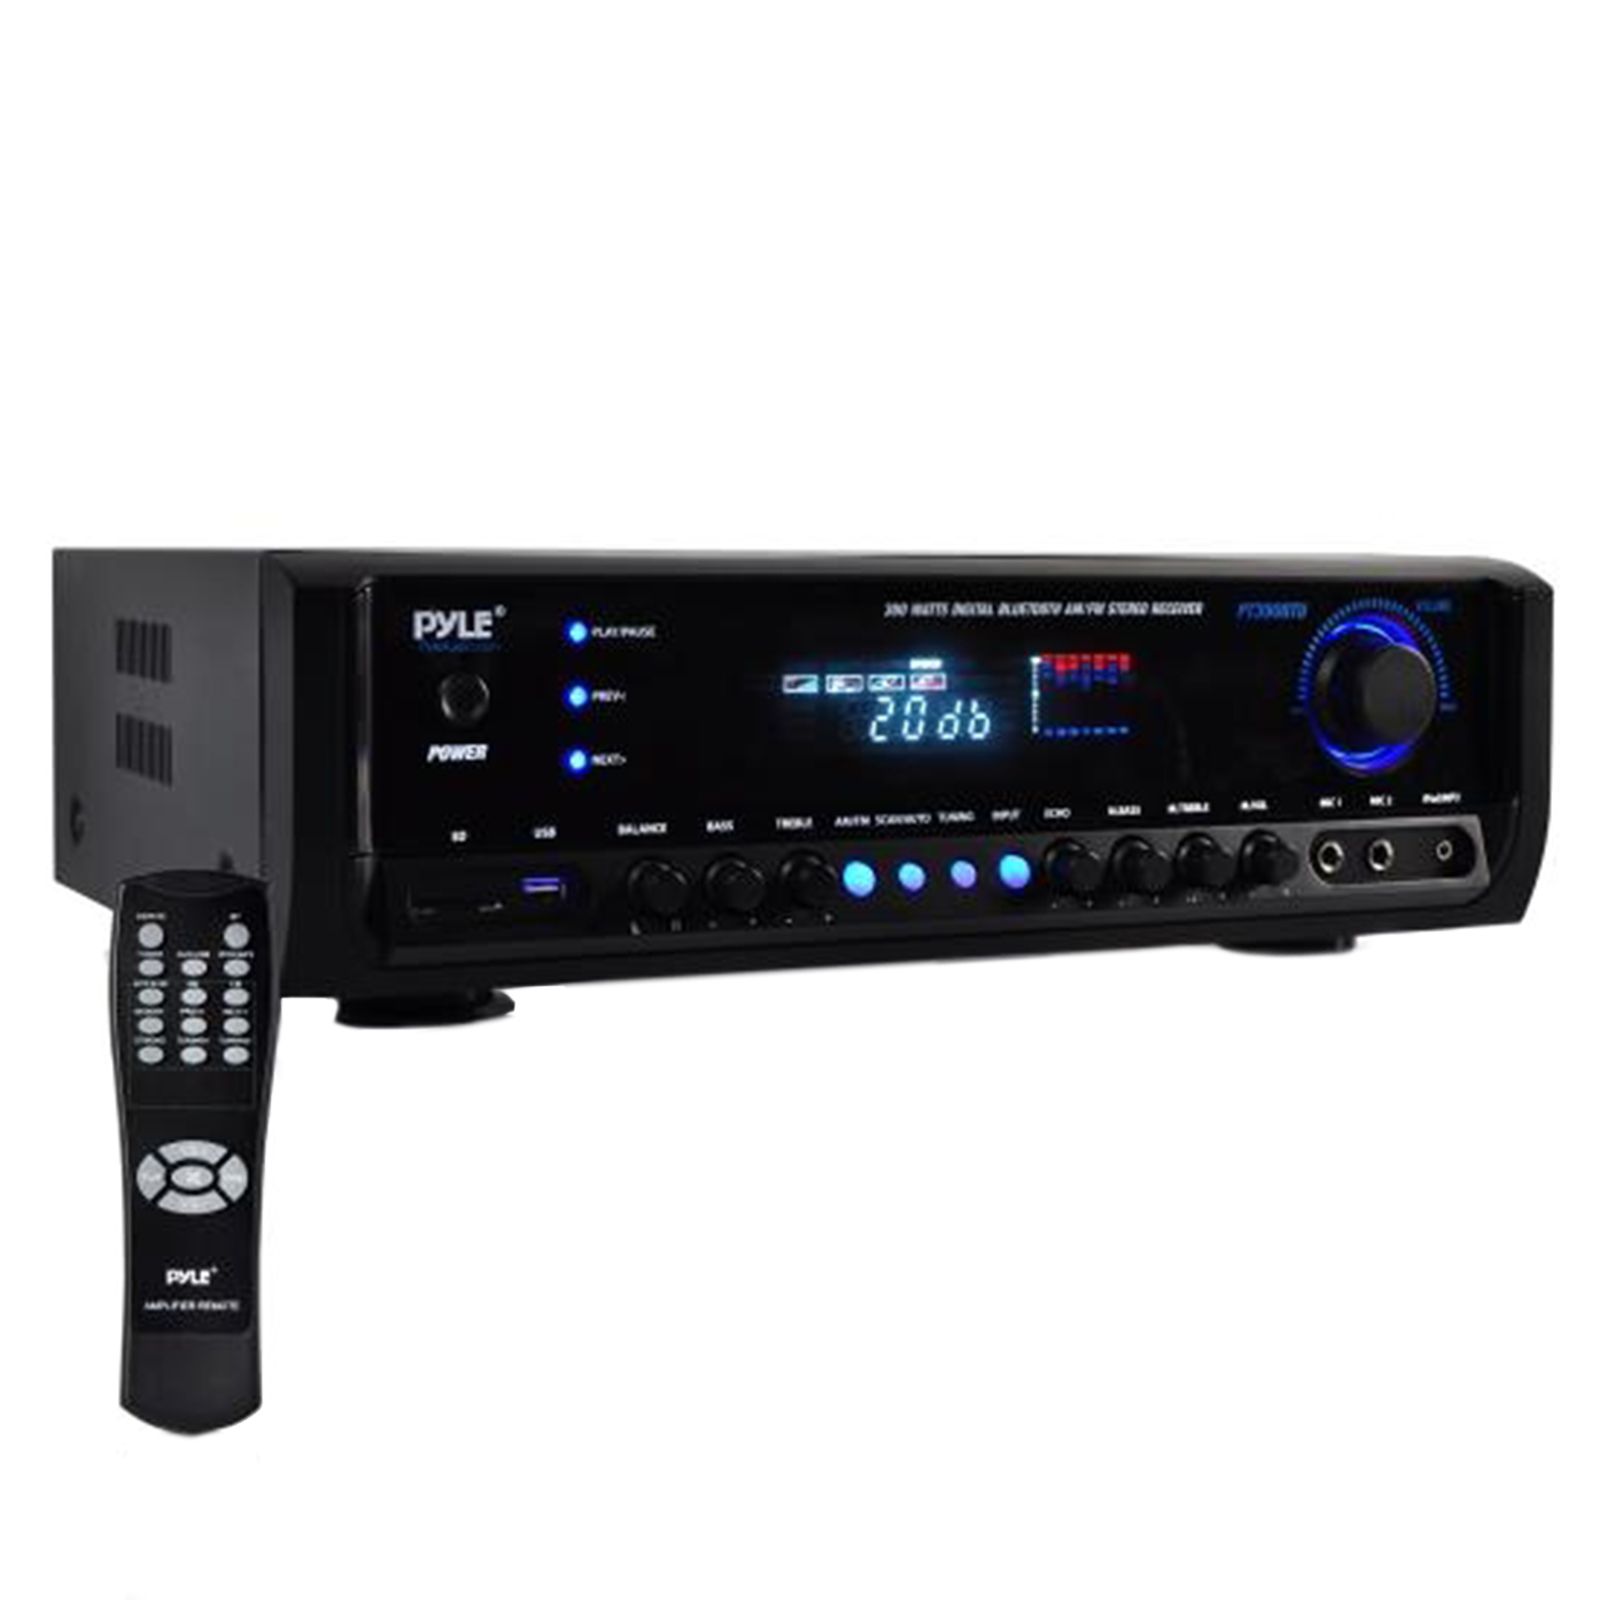 Home Theater BT Stereo Receiver, Aux (3.5mm) Input, MP3 USB SD AM FM Radio, (2) Mic Inputs, 300 Watt by Pyle